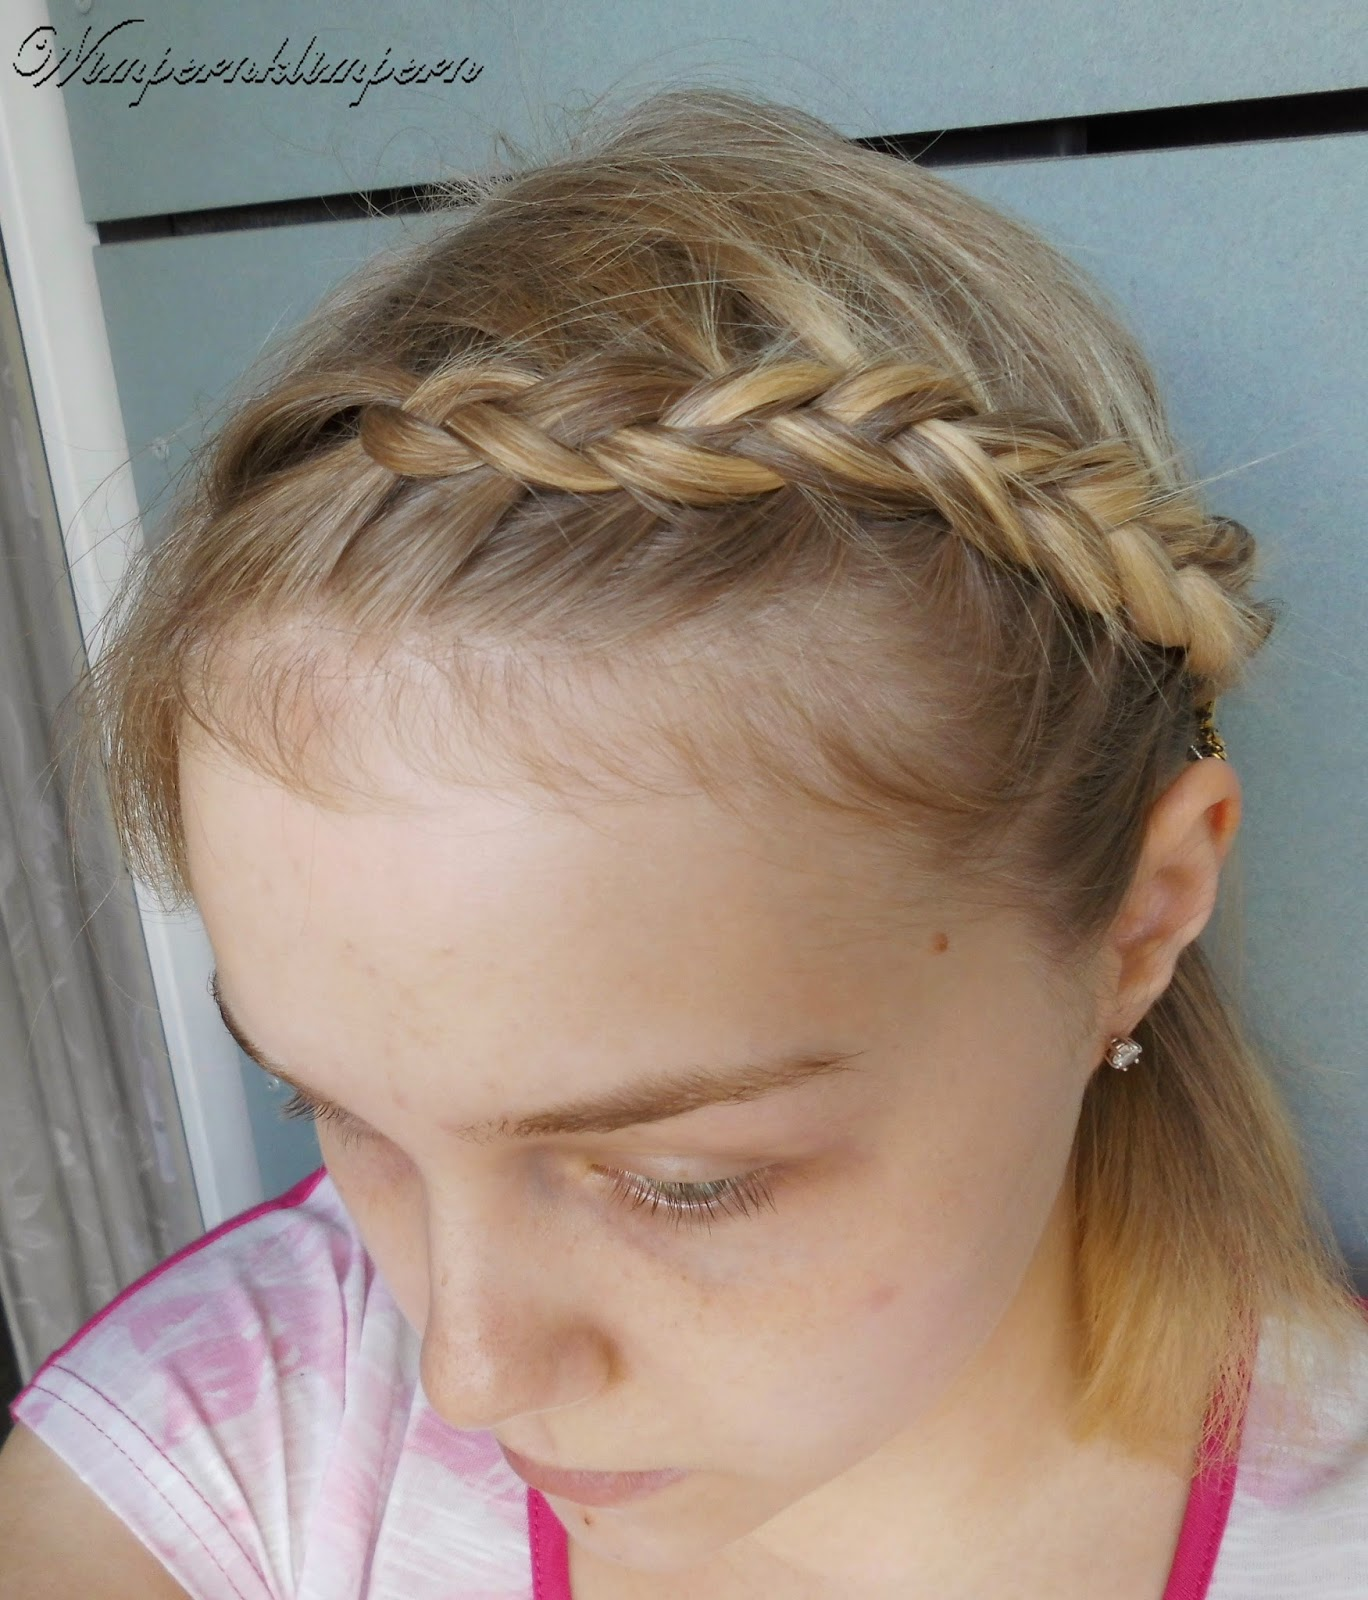 Oktoberfest Flechtfrisuren Dutch Braid vorne